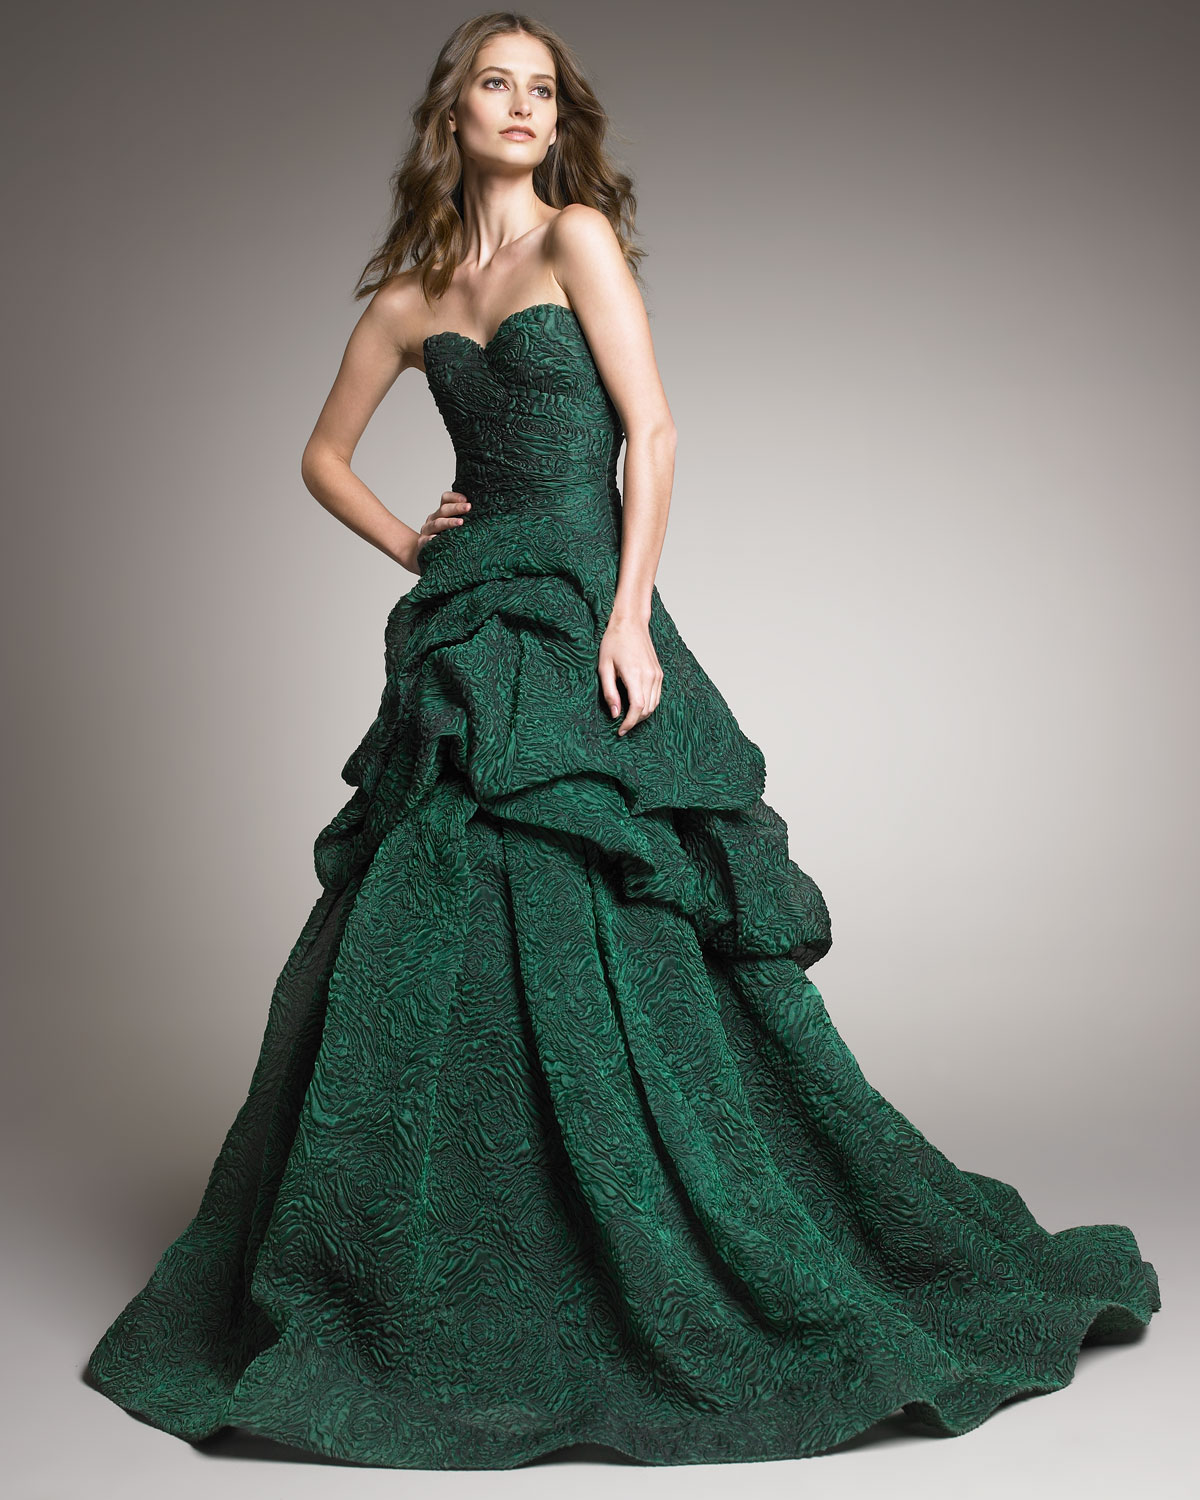 Lyst - Monique Lhuillier Tufted-skirt Strapless Gown in Green